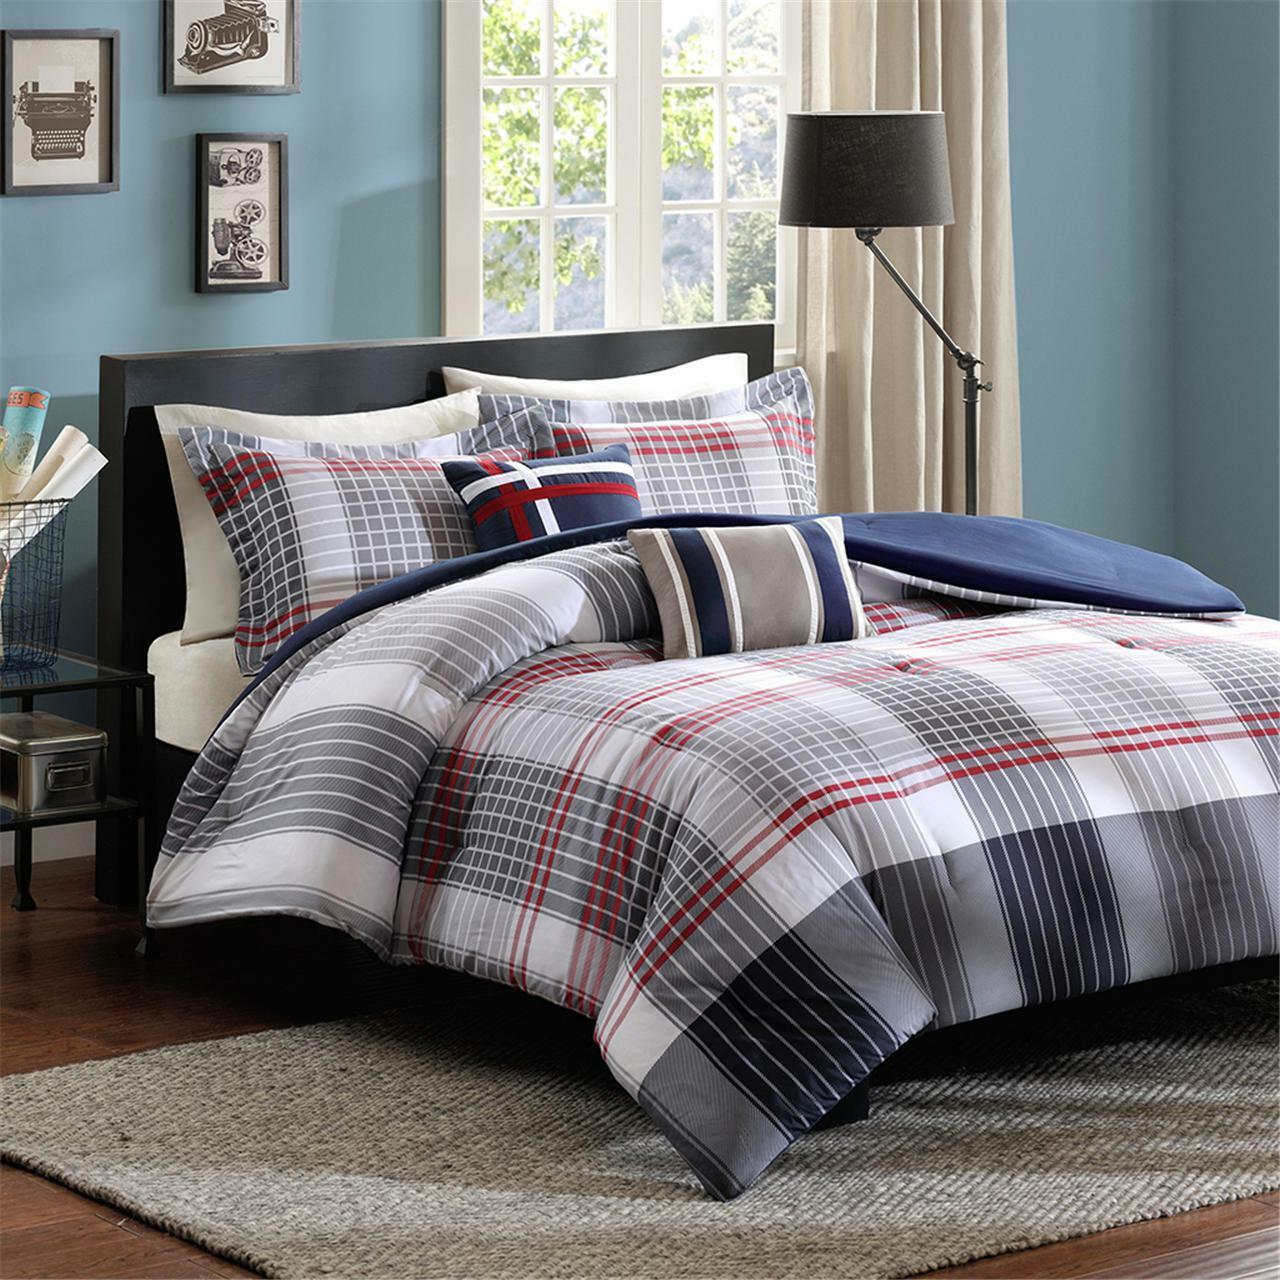 SPORTY MODERN blueE RED GREY NAVY GREY PLAID COZY STRIPE COMFORTER SET & PILLOWS